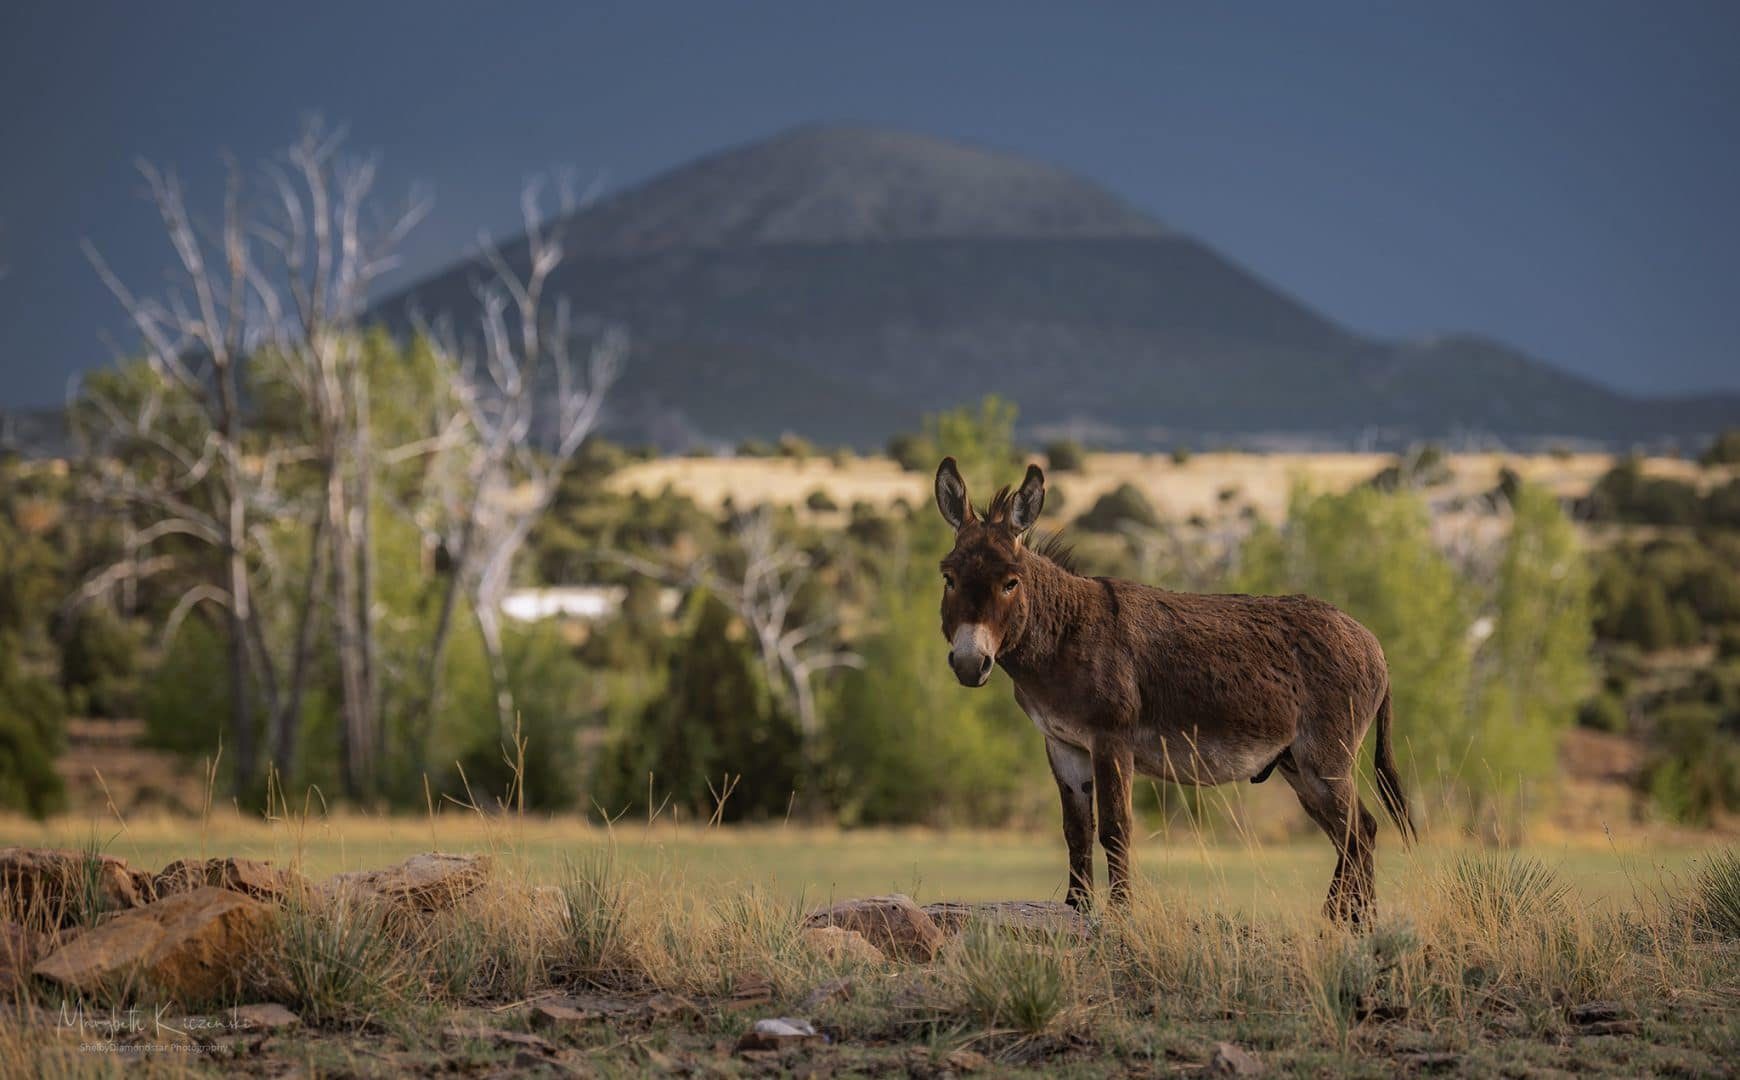 Donkey with Capulin Volcano looming in the background.  Nikon Z6 - Nikkor 70-200mm. Copyright 2020 MaryBeth Kiczenski.